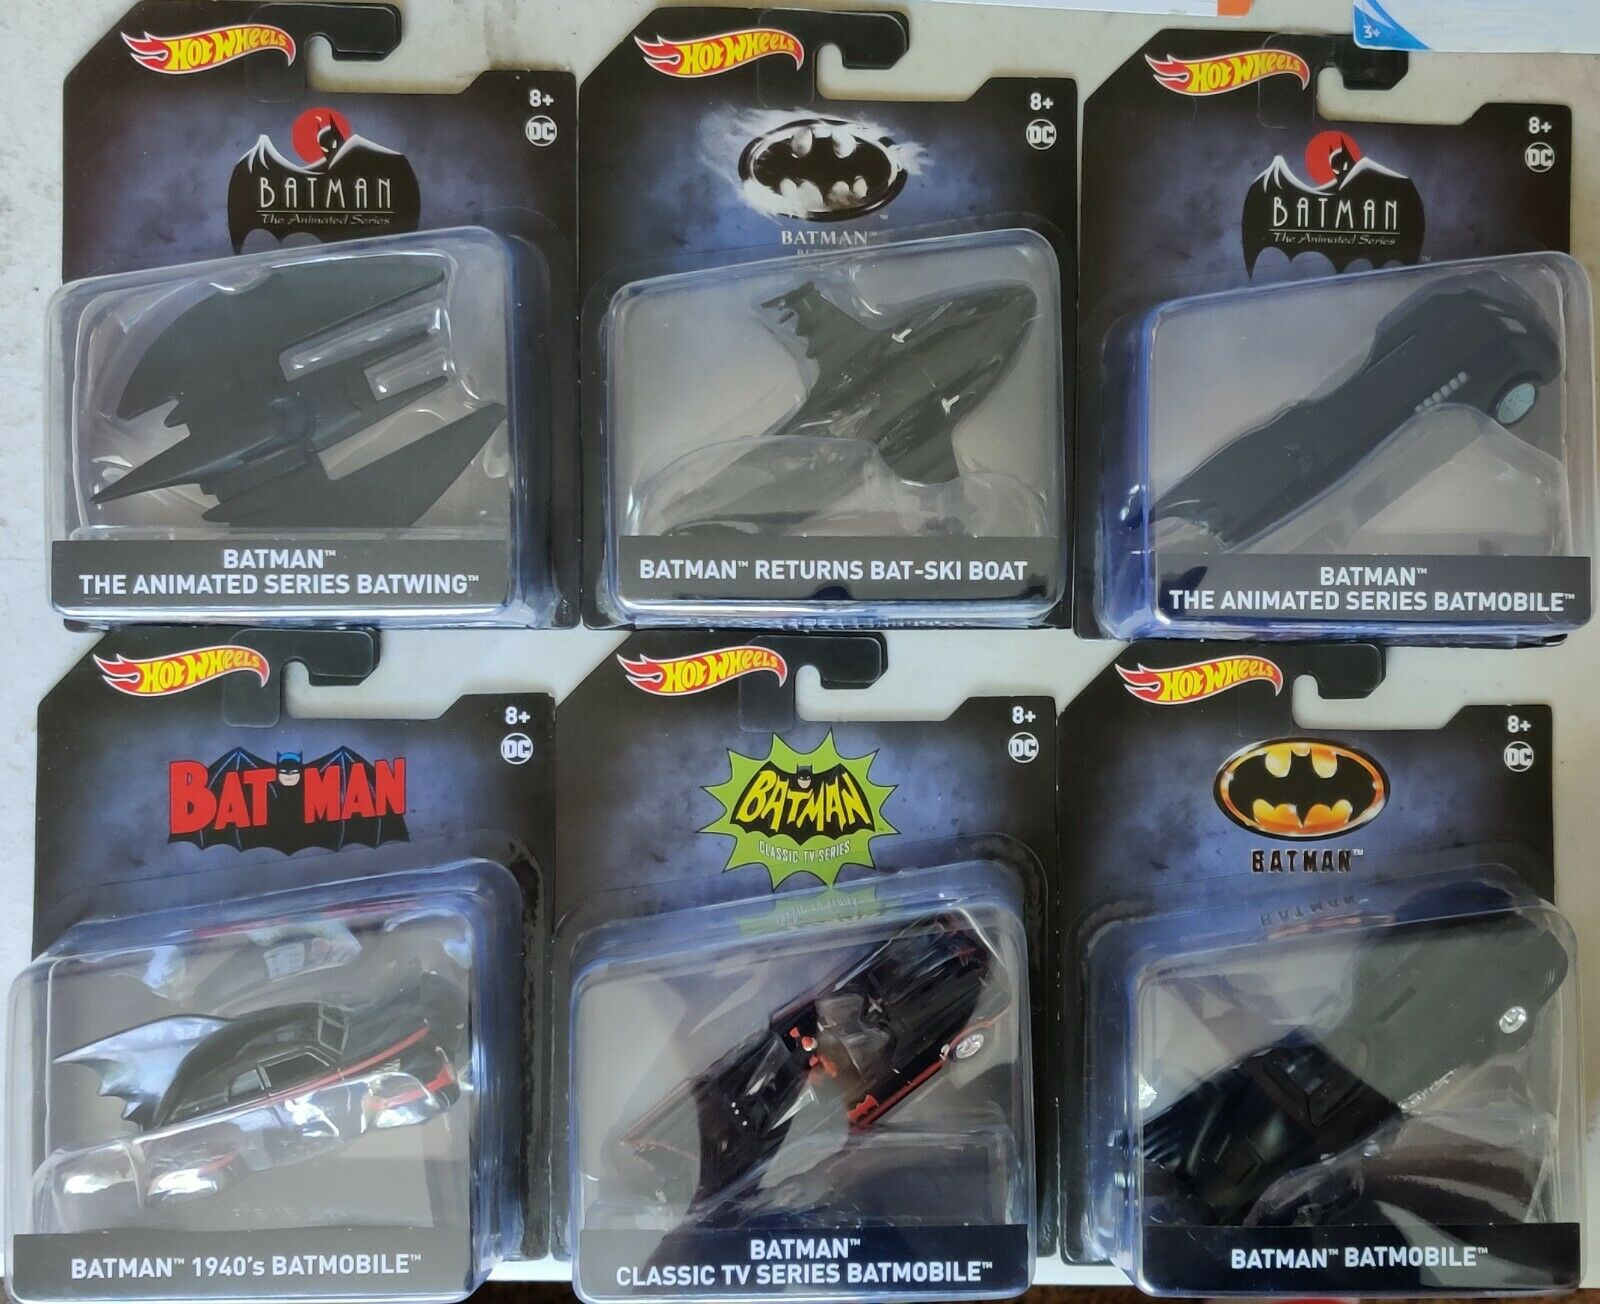 2020 HOT WHEELS COMPLETE SET OF 6 BATMAN VEHICLES